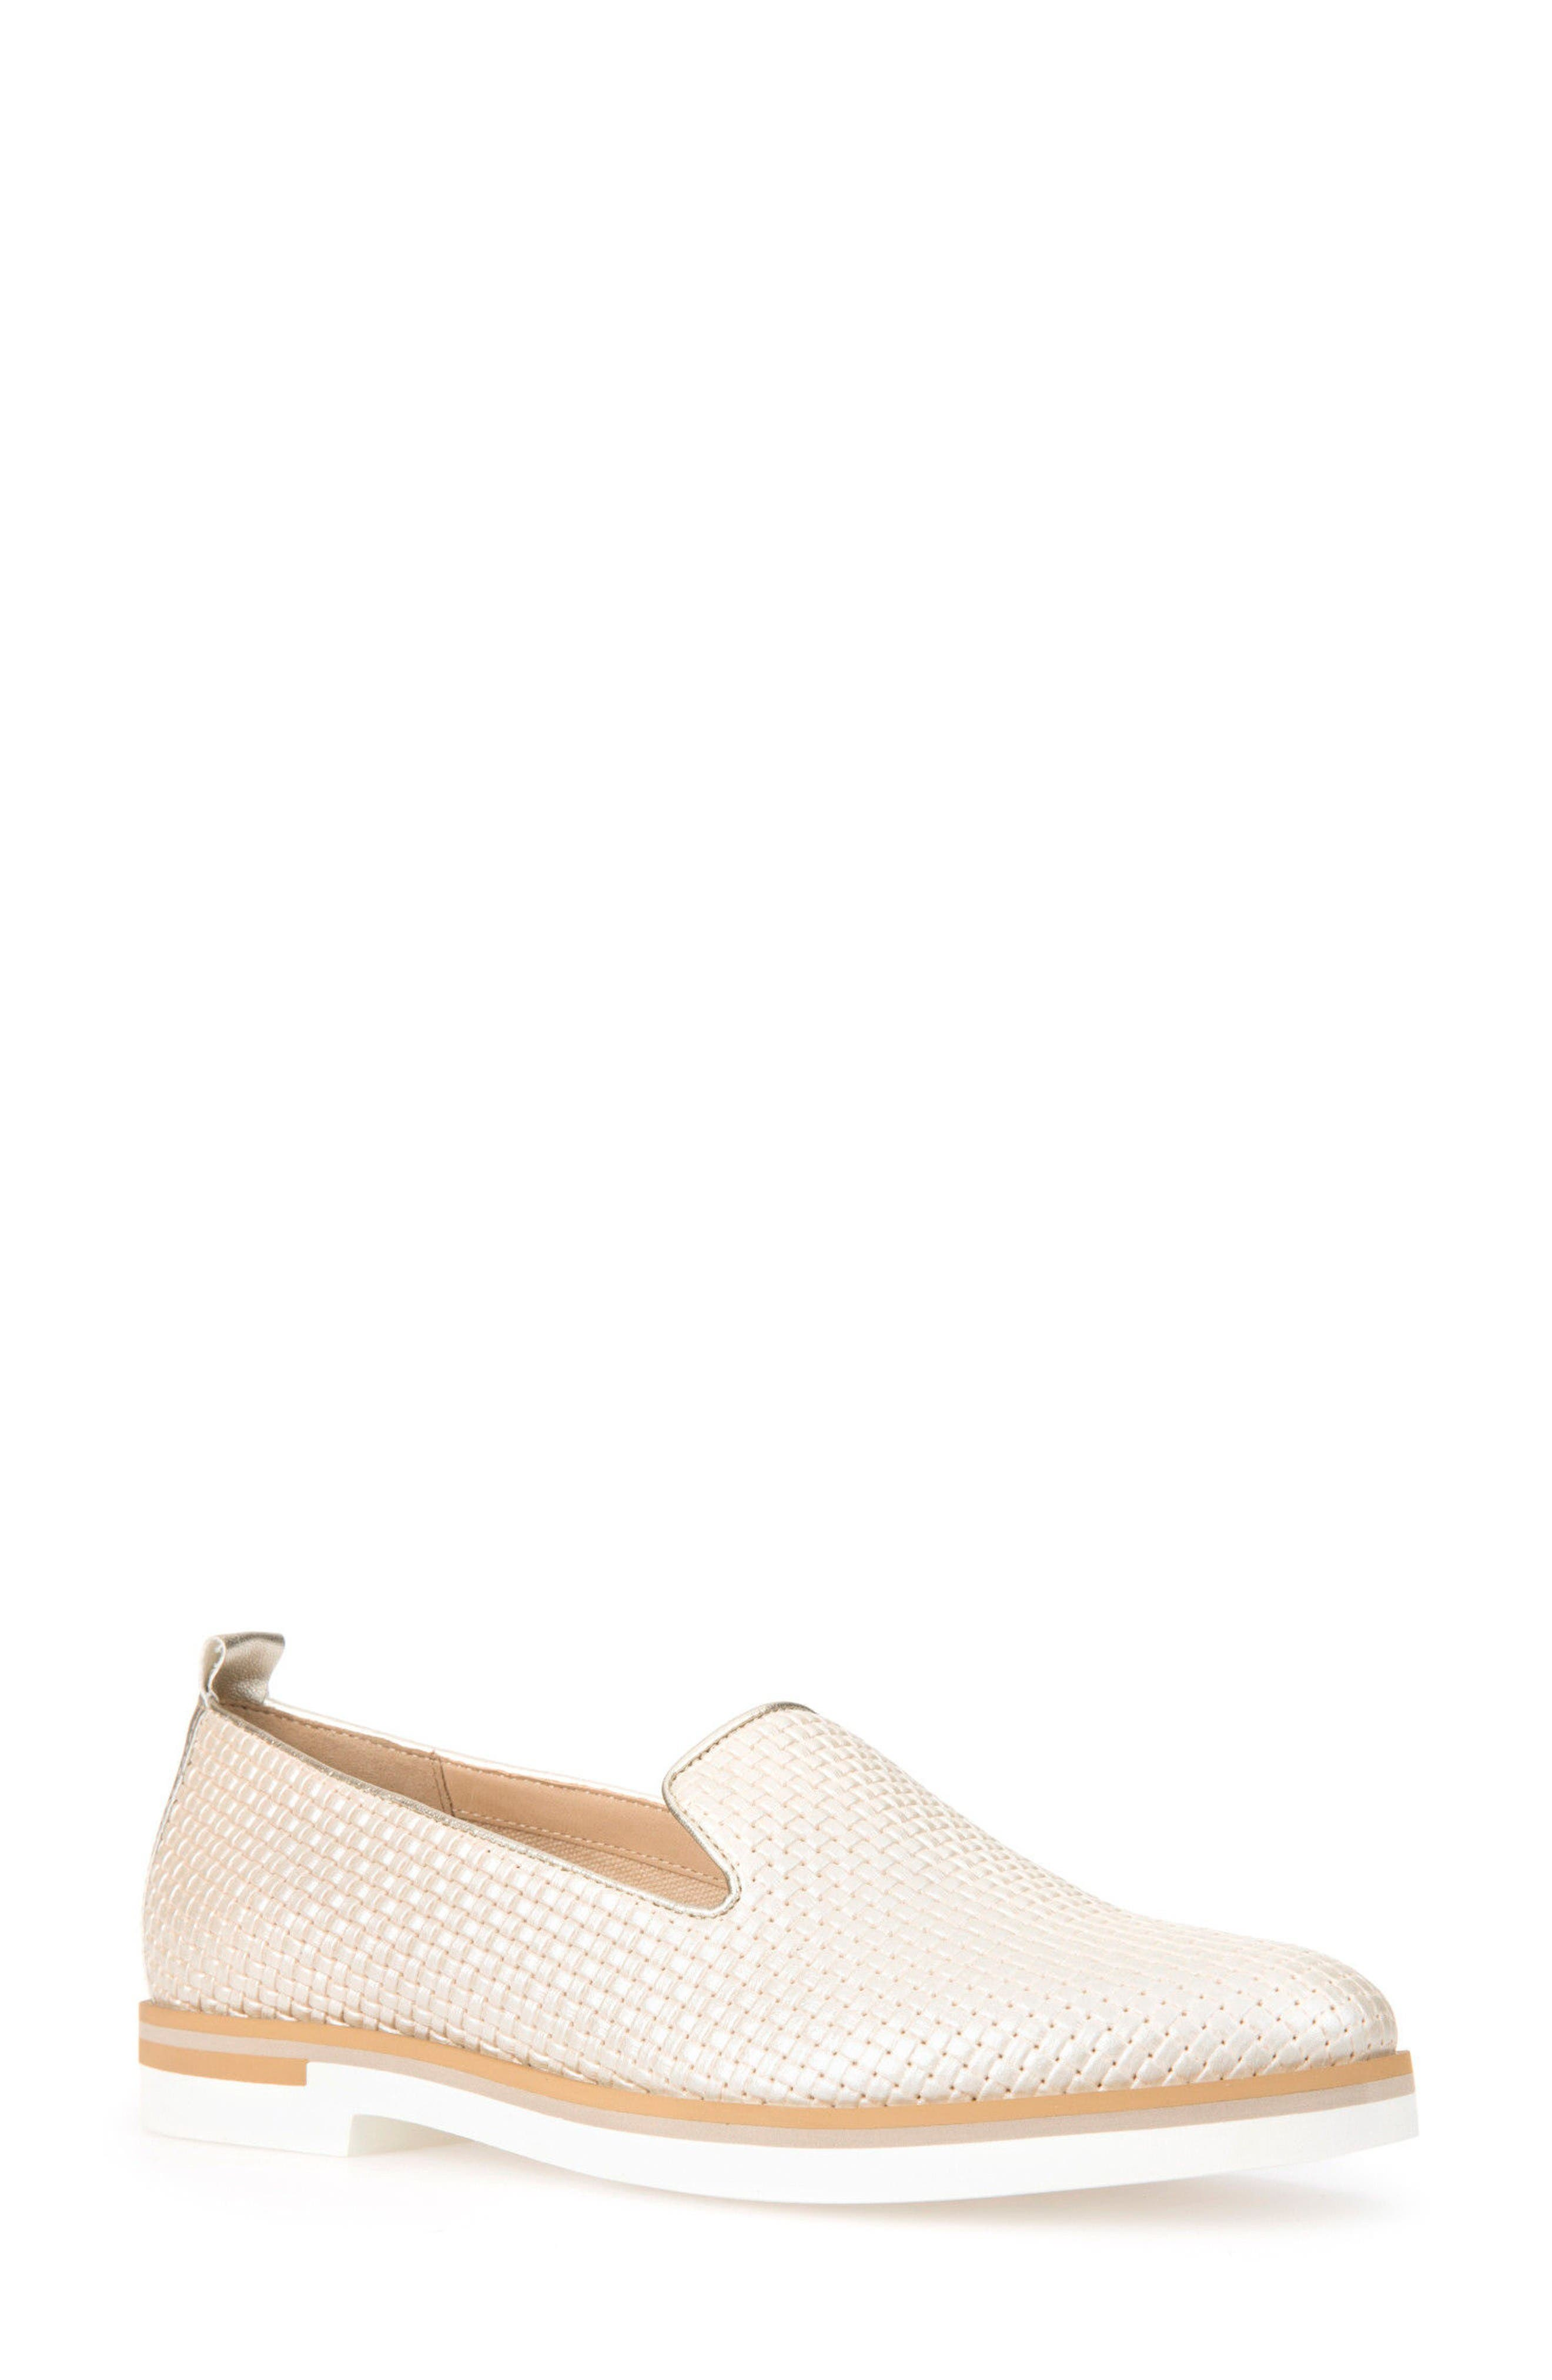 GEOX Janalee Loafer